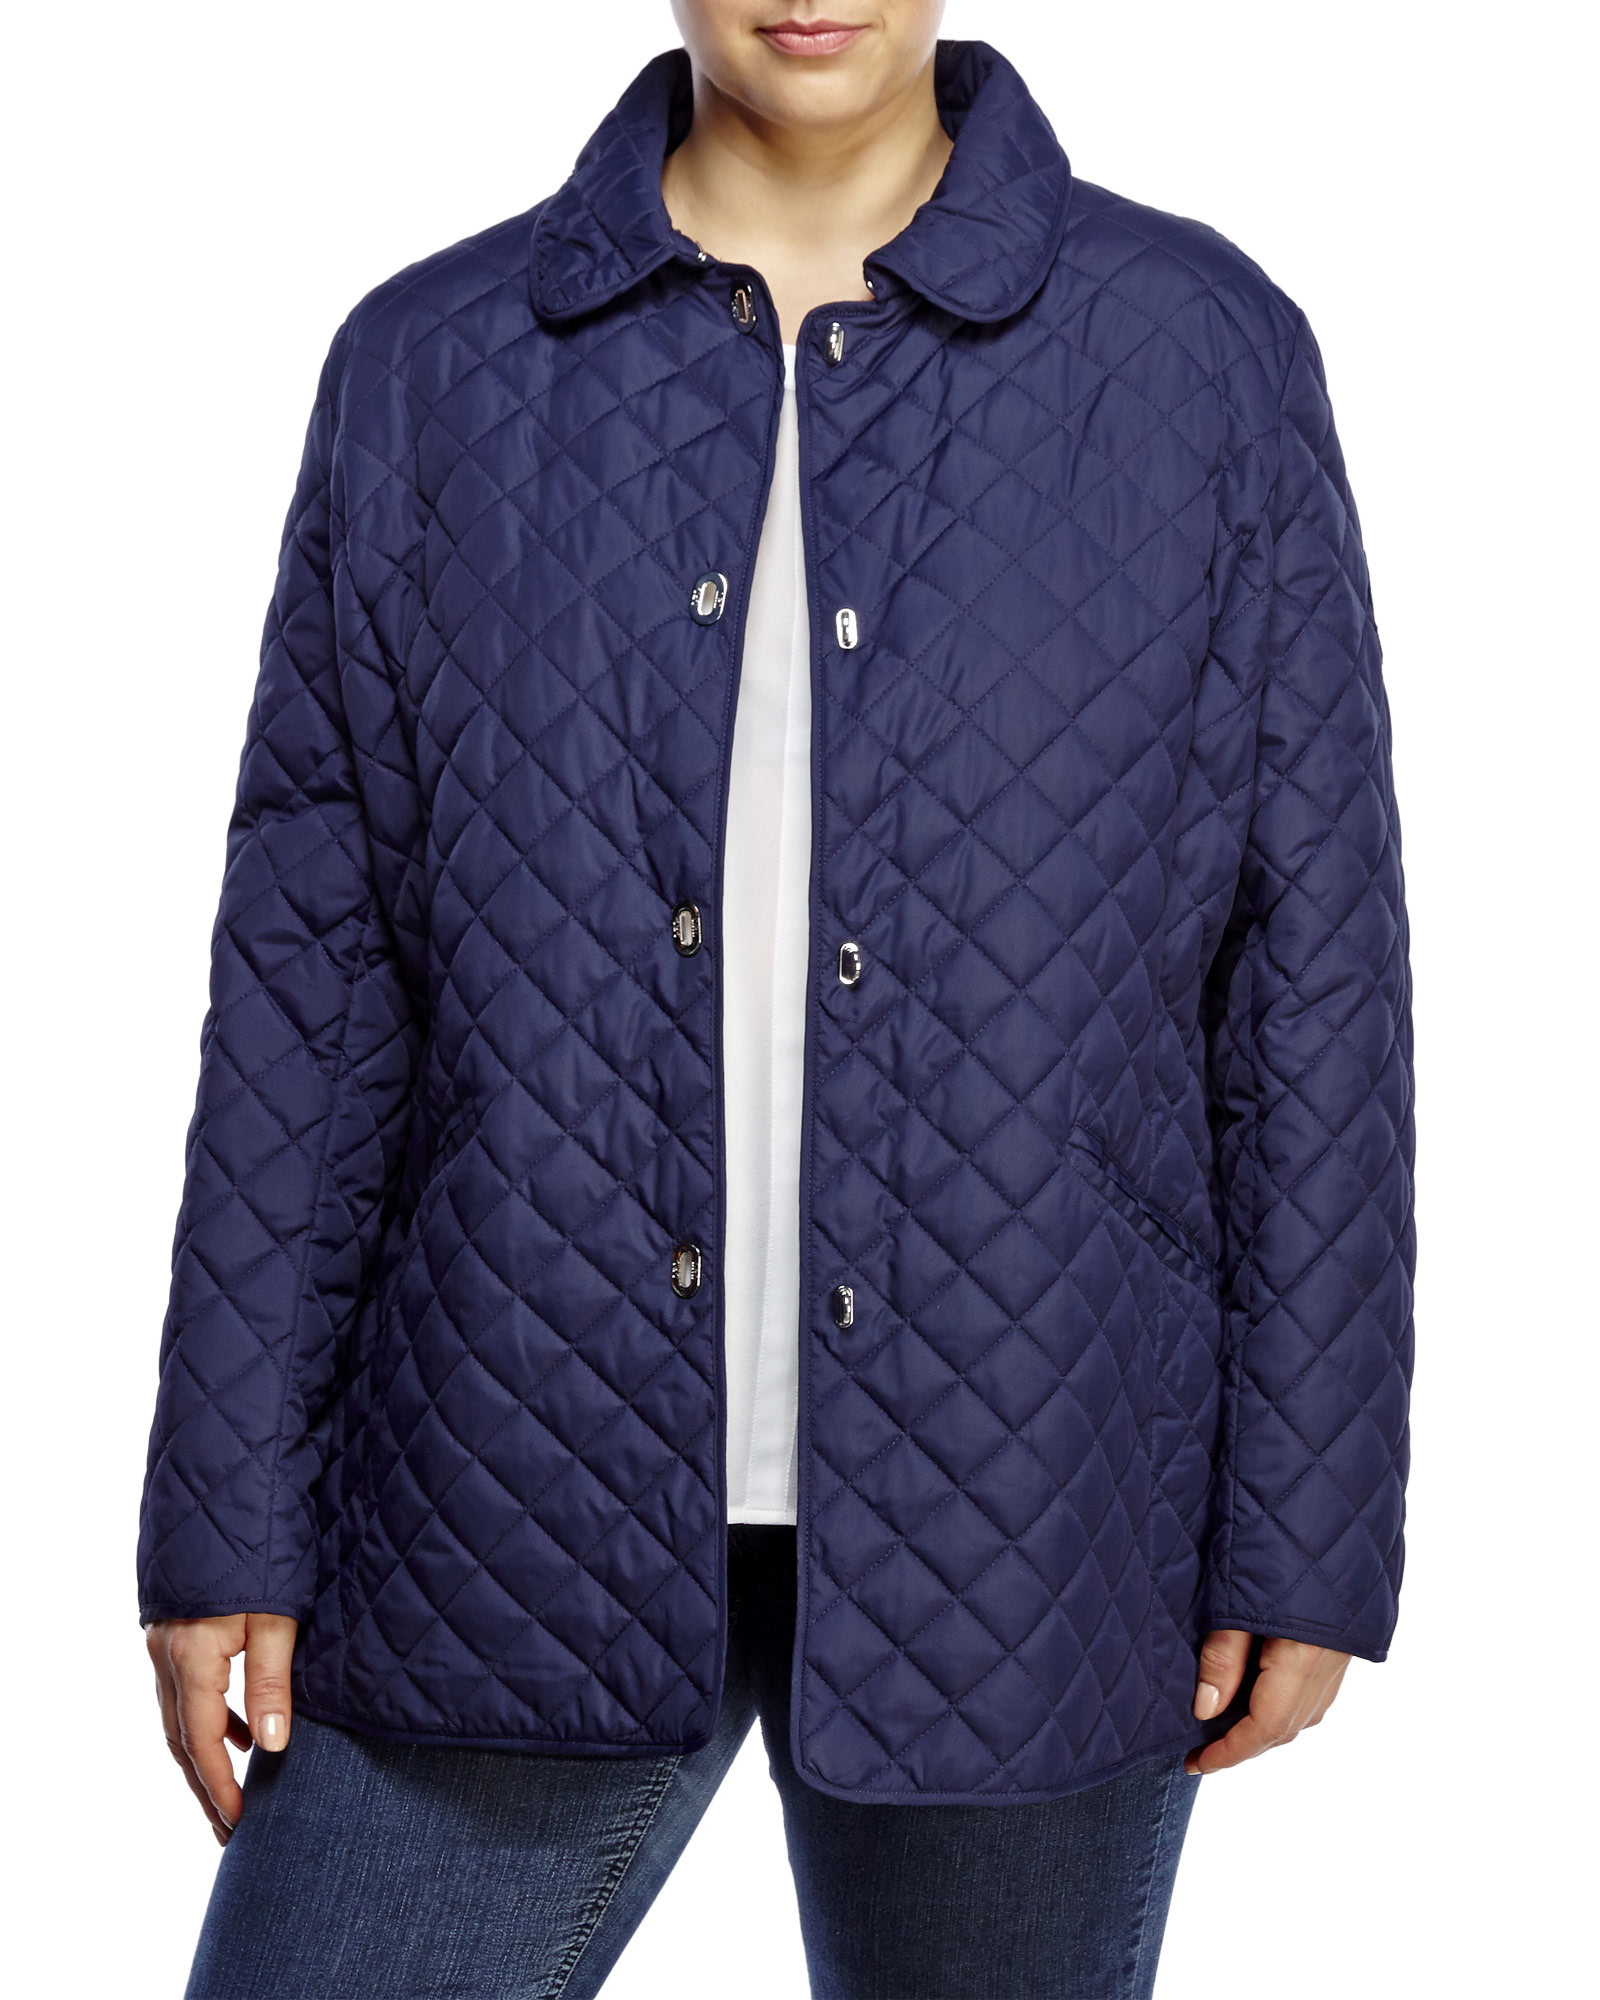 Plus Size Navy Diamond Quilted Jacket